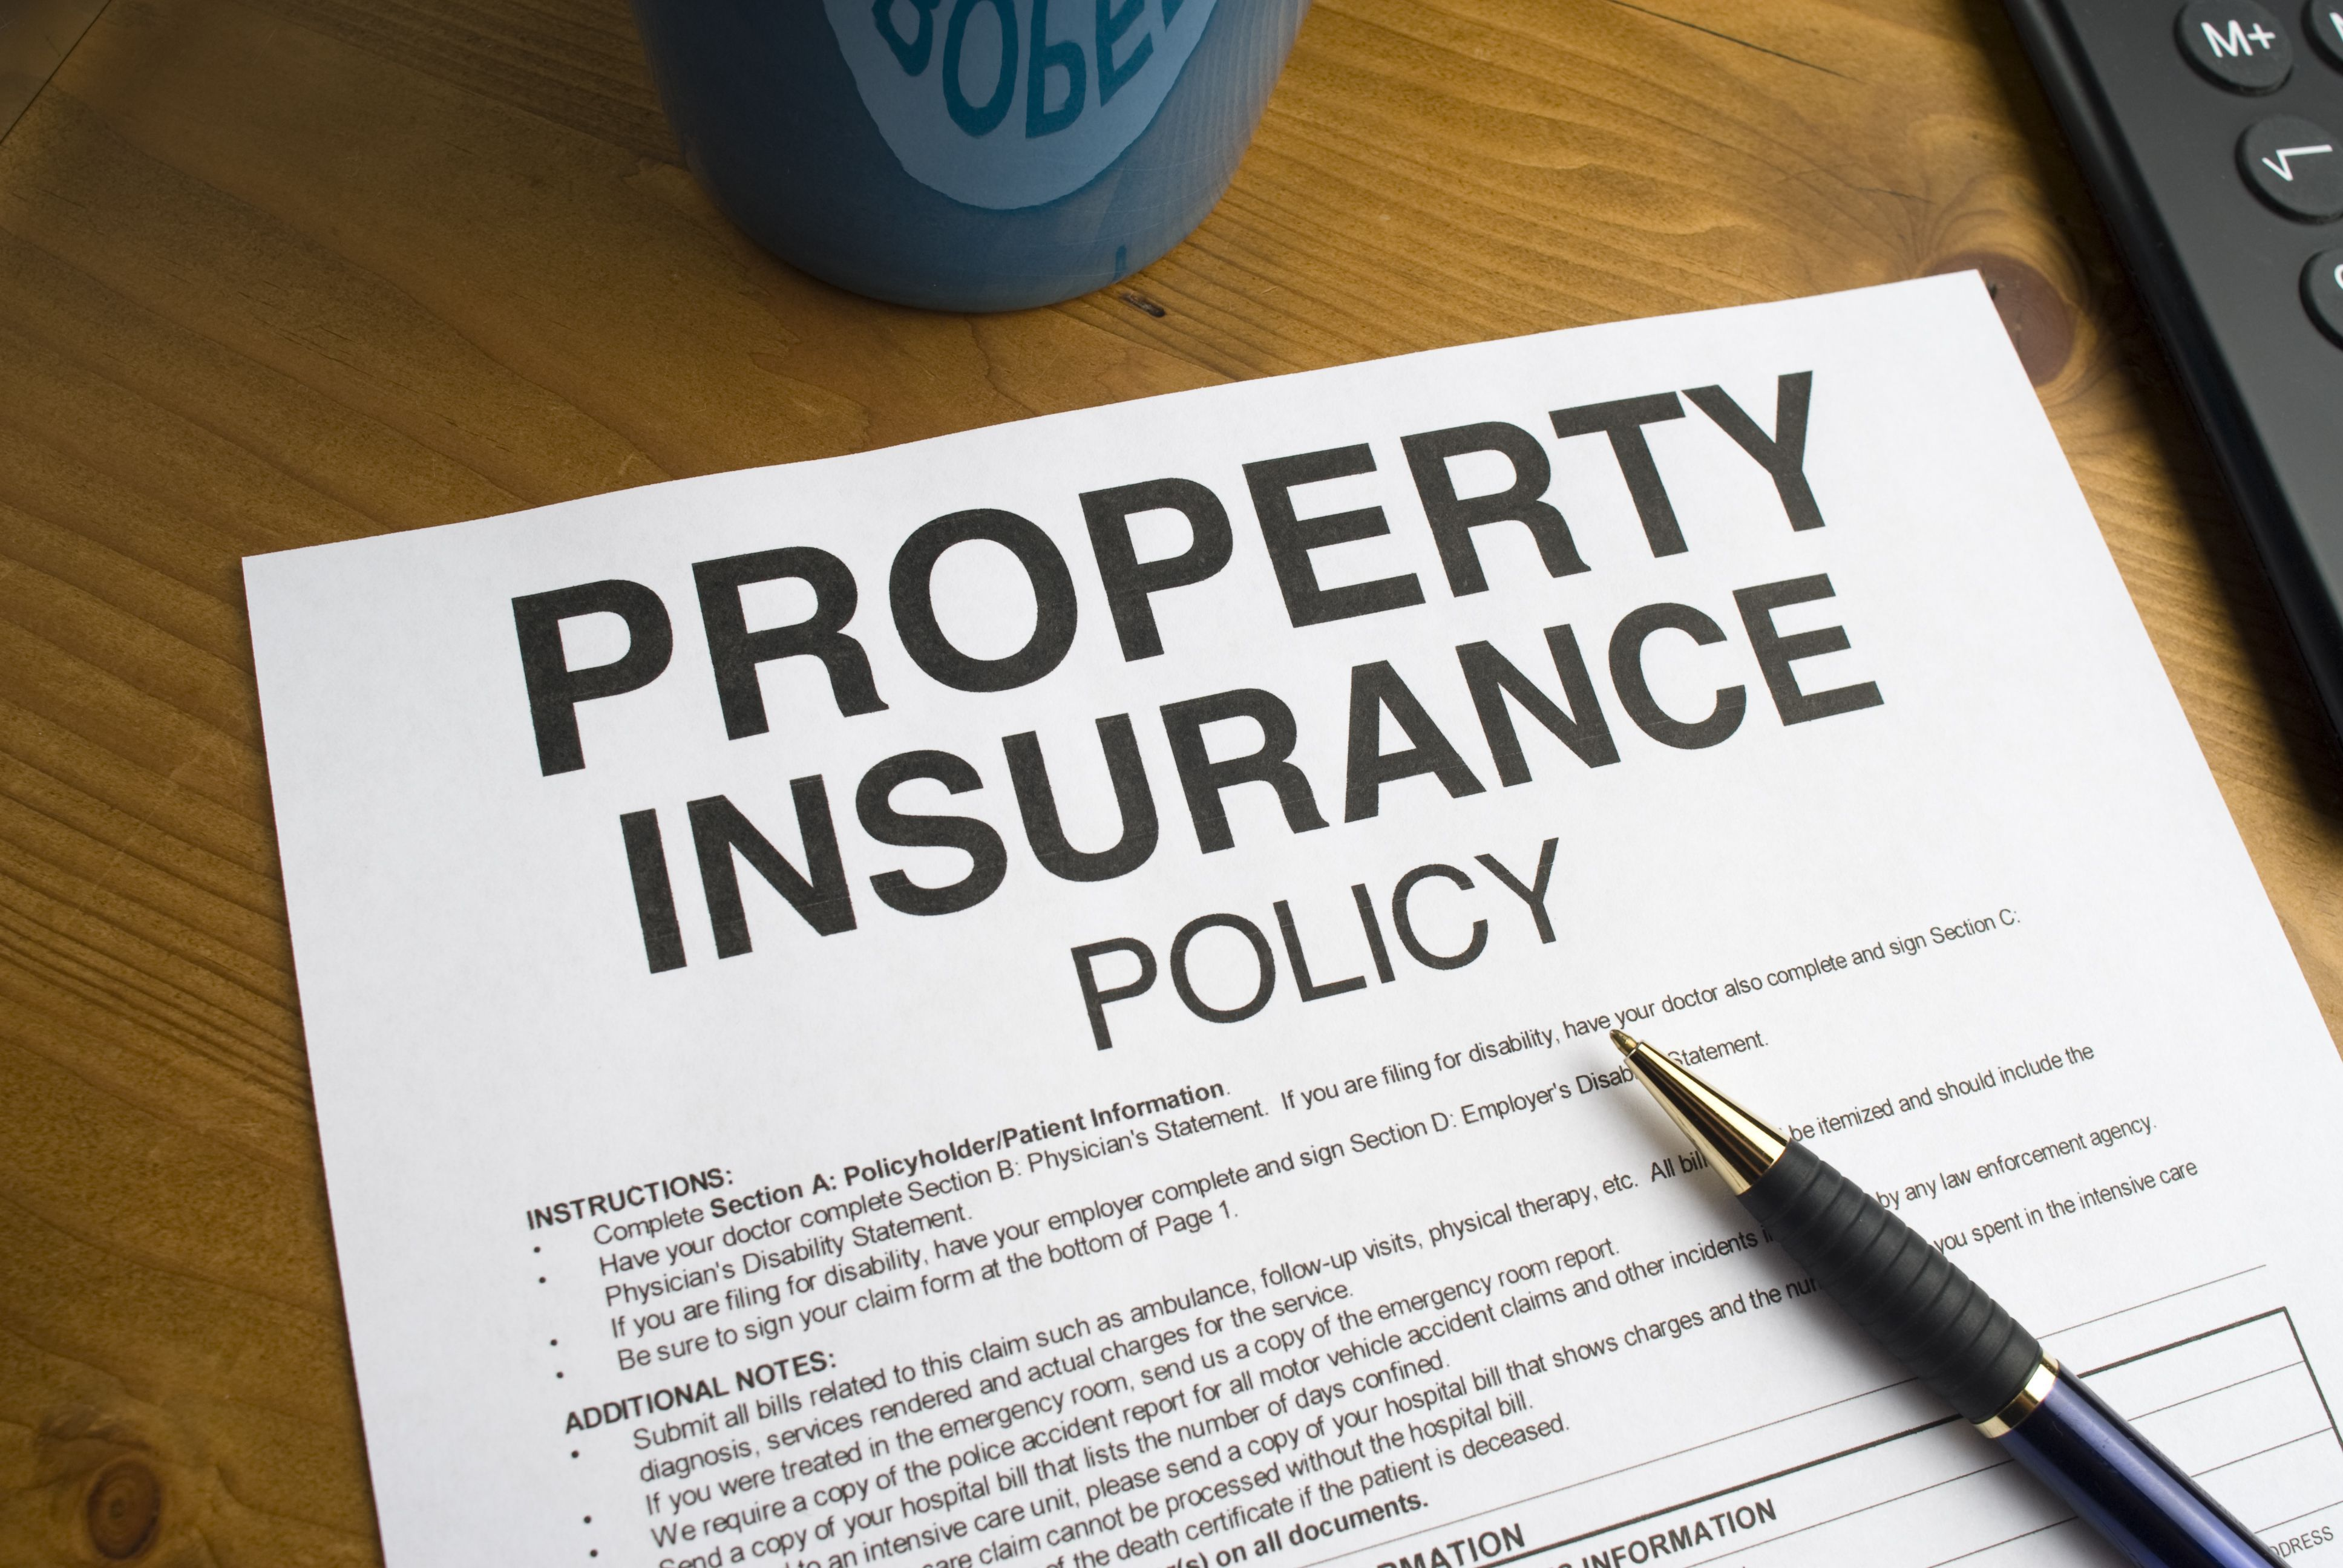 WHAT IS PROPERTY INSURANCE POLICY